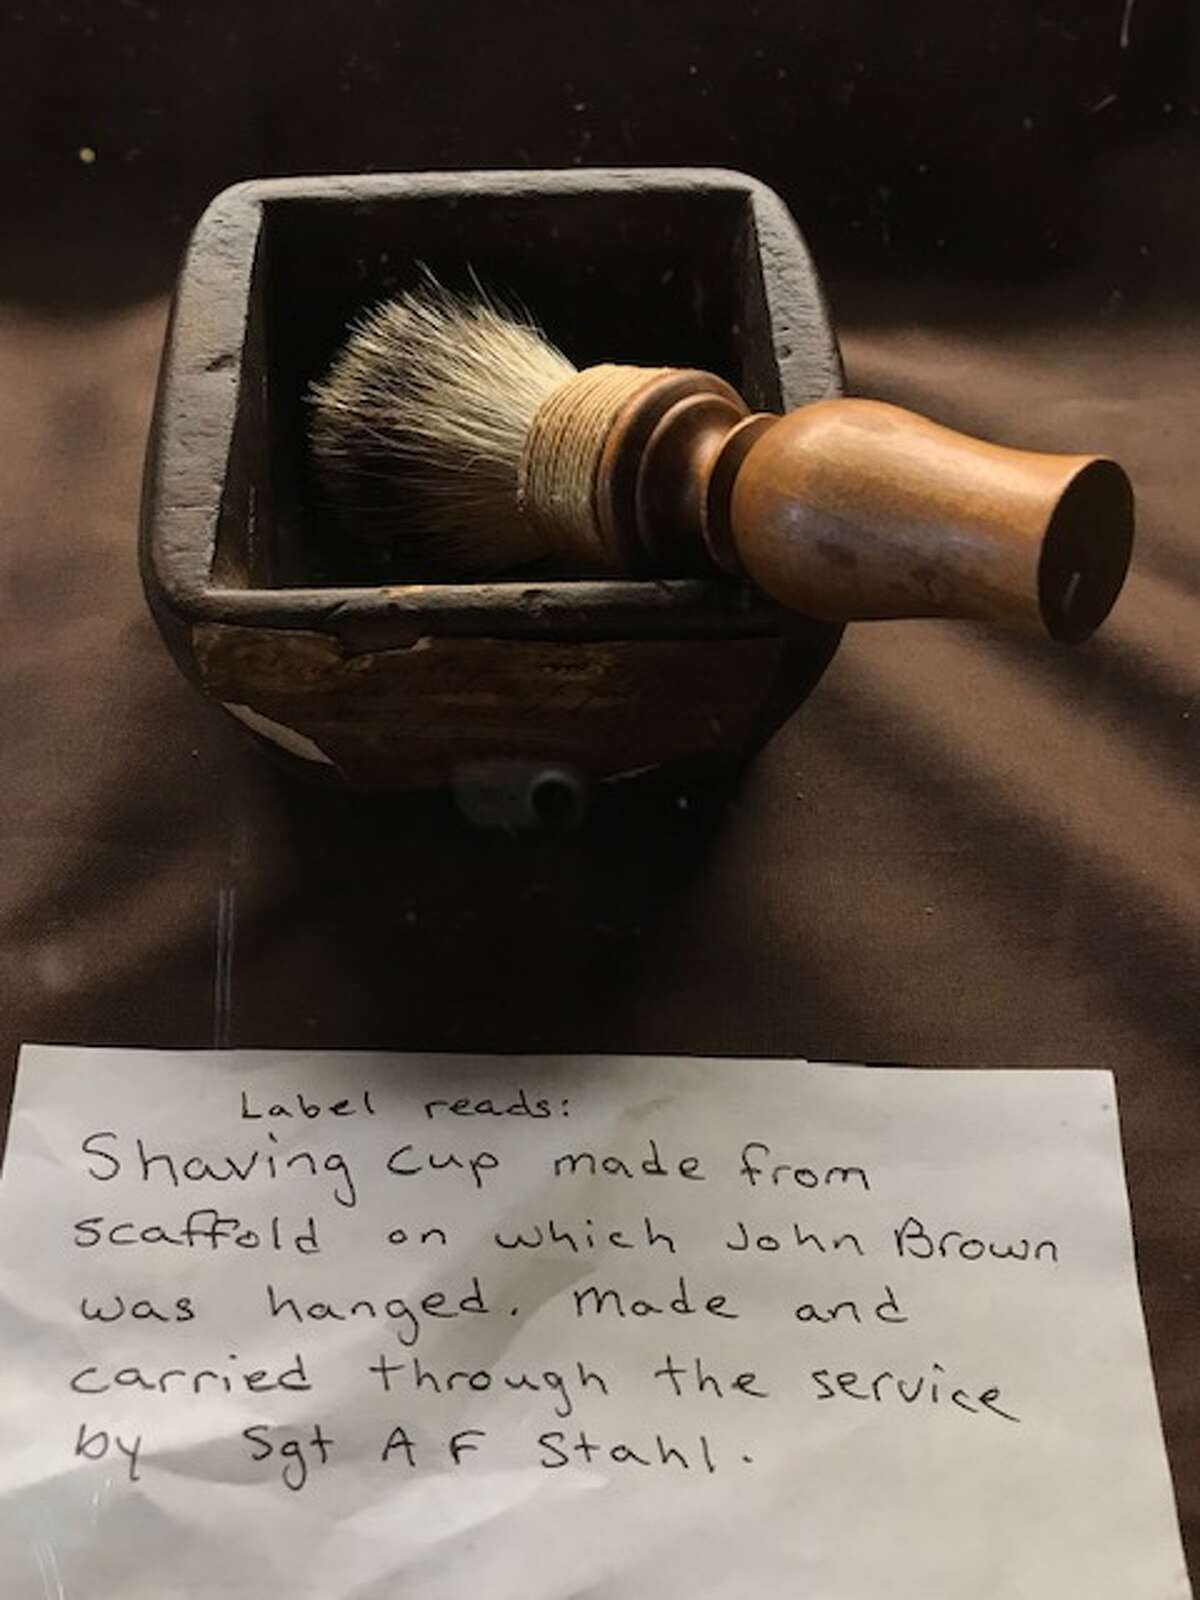 Shaving cup made from scaffold upon which John Brown was hanged in 1859 on display in the farmhouse on the John Brown Farm.